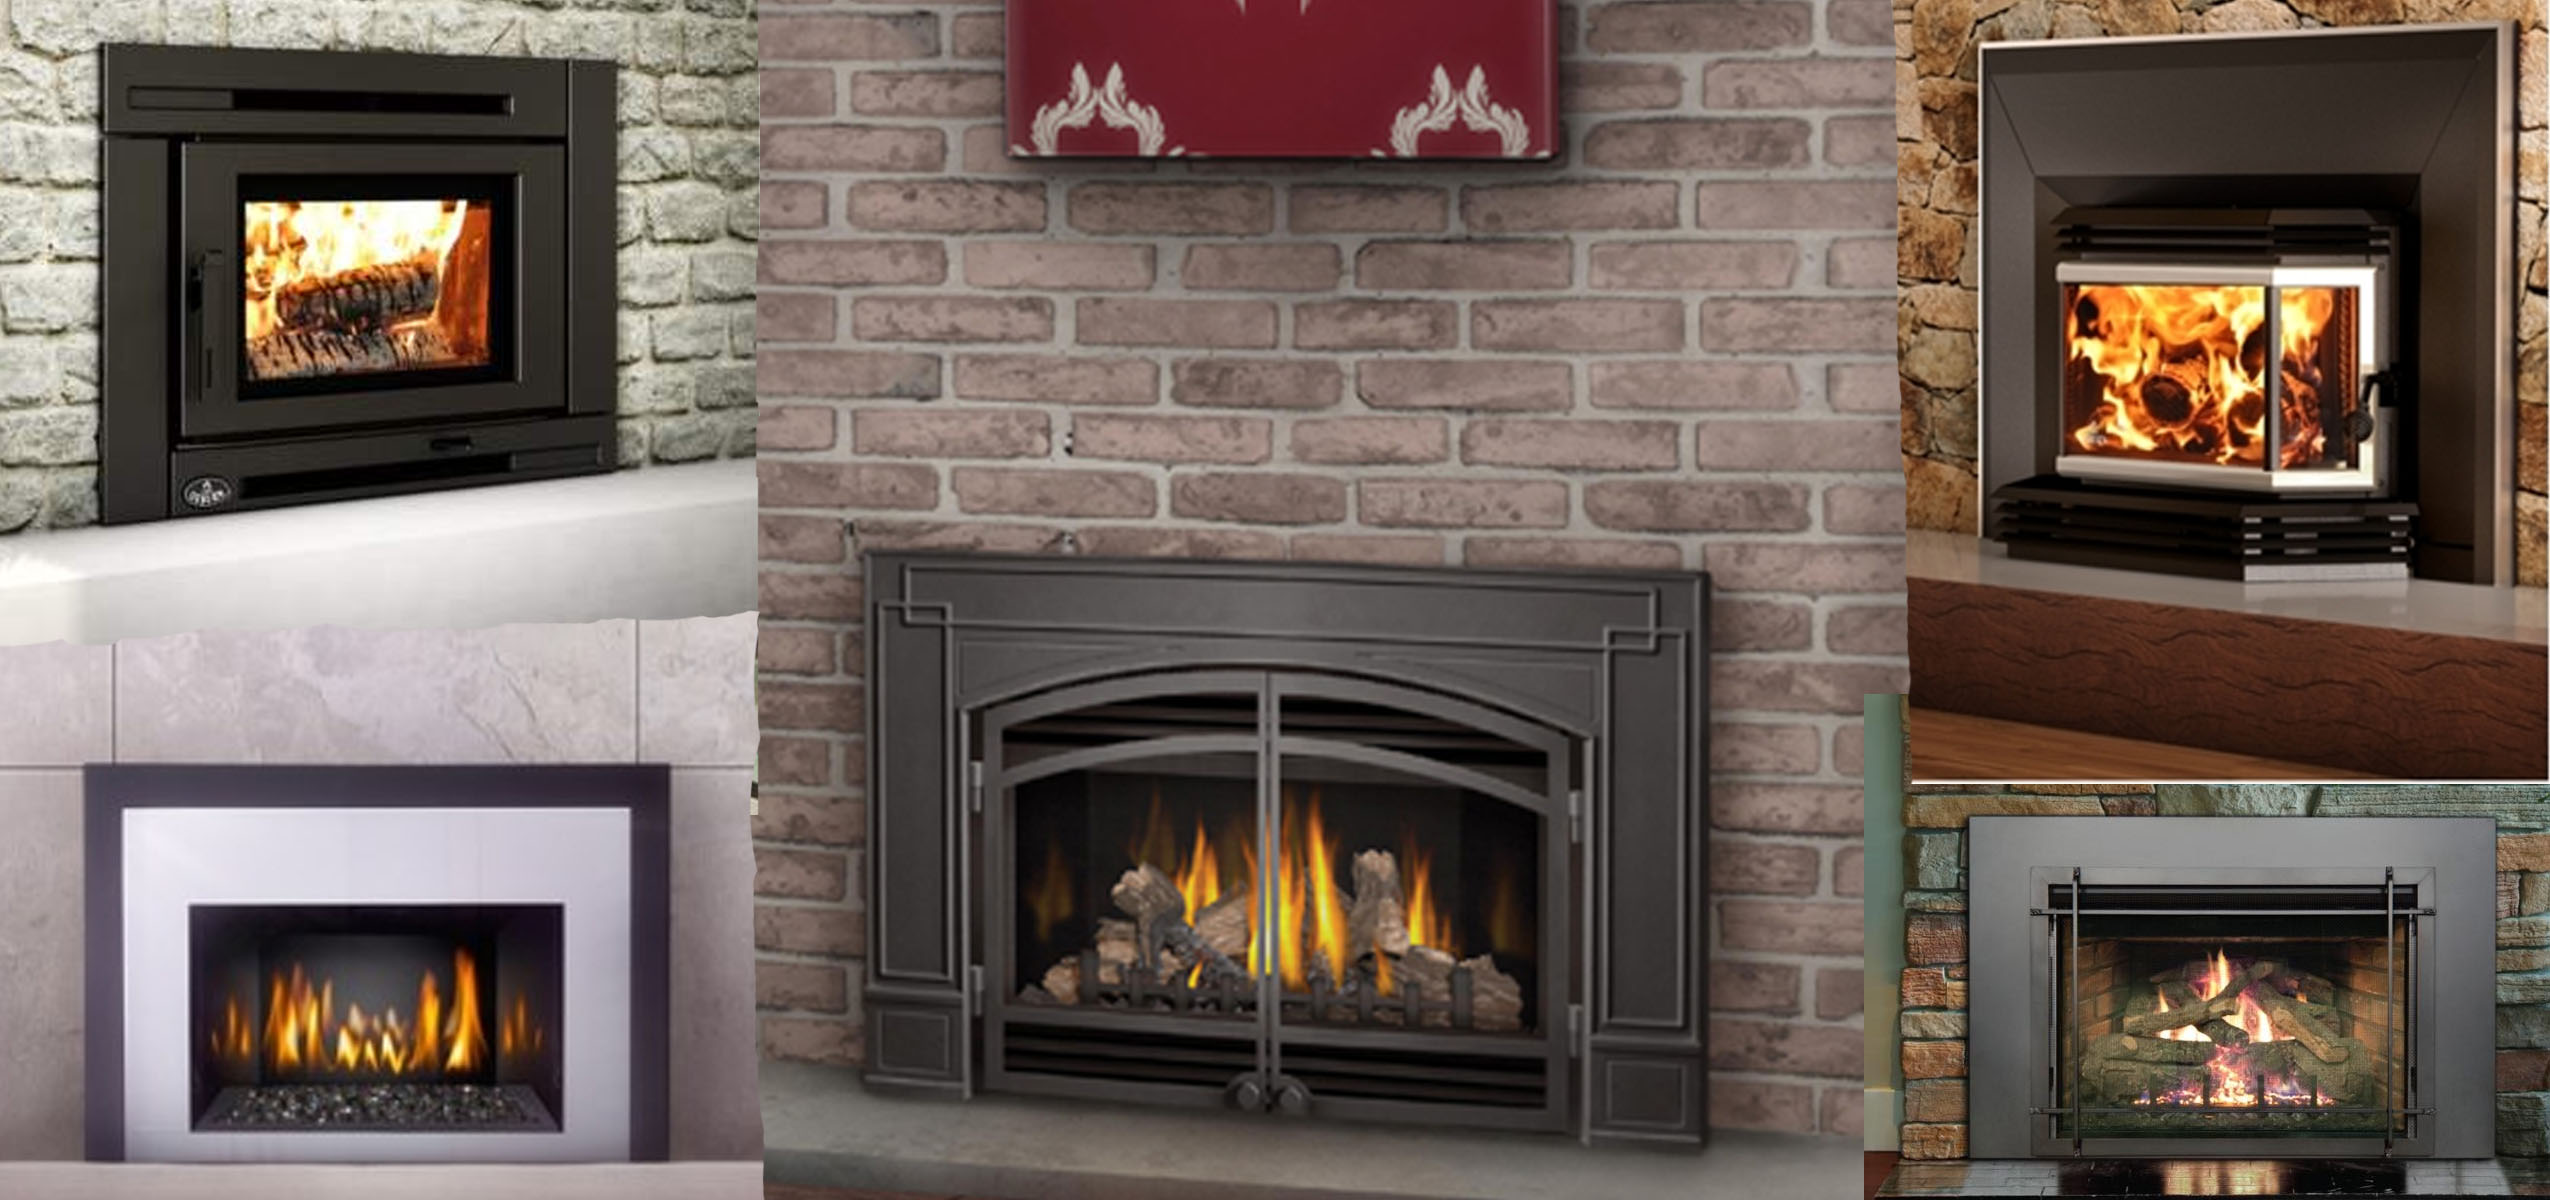 Fireplace Inserts and Stoves